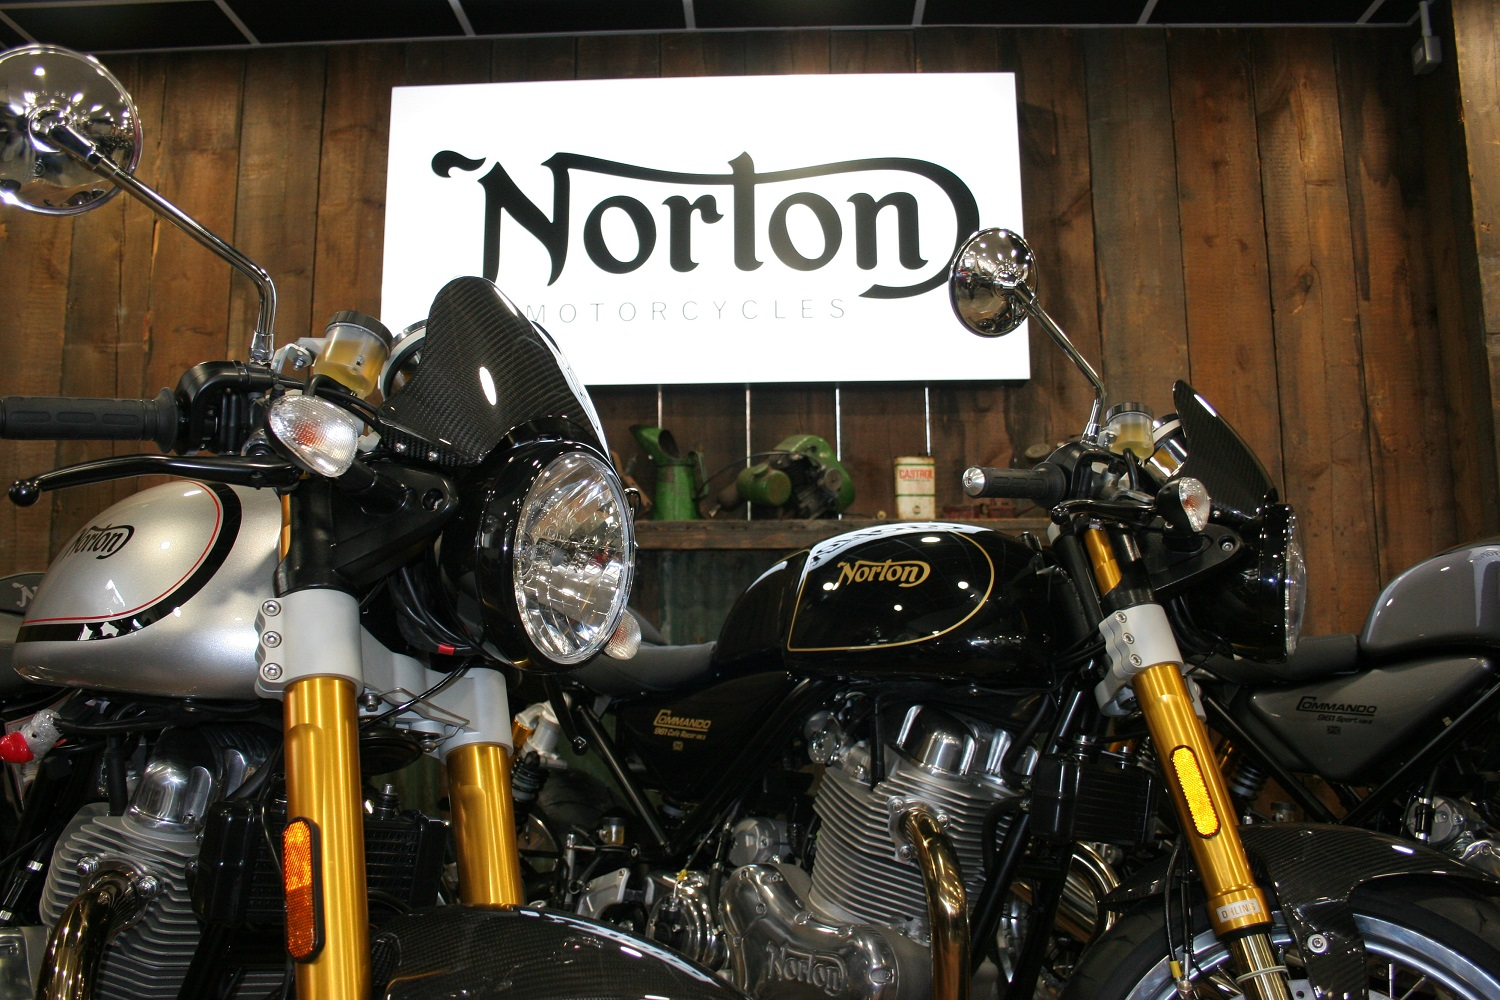 Norton Motorcycles in Teasdale Motorcycle's Store